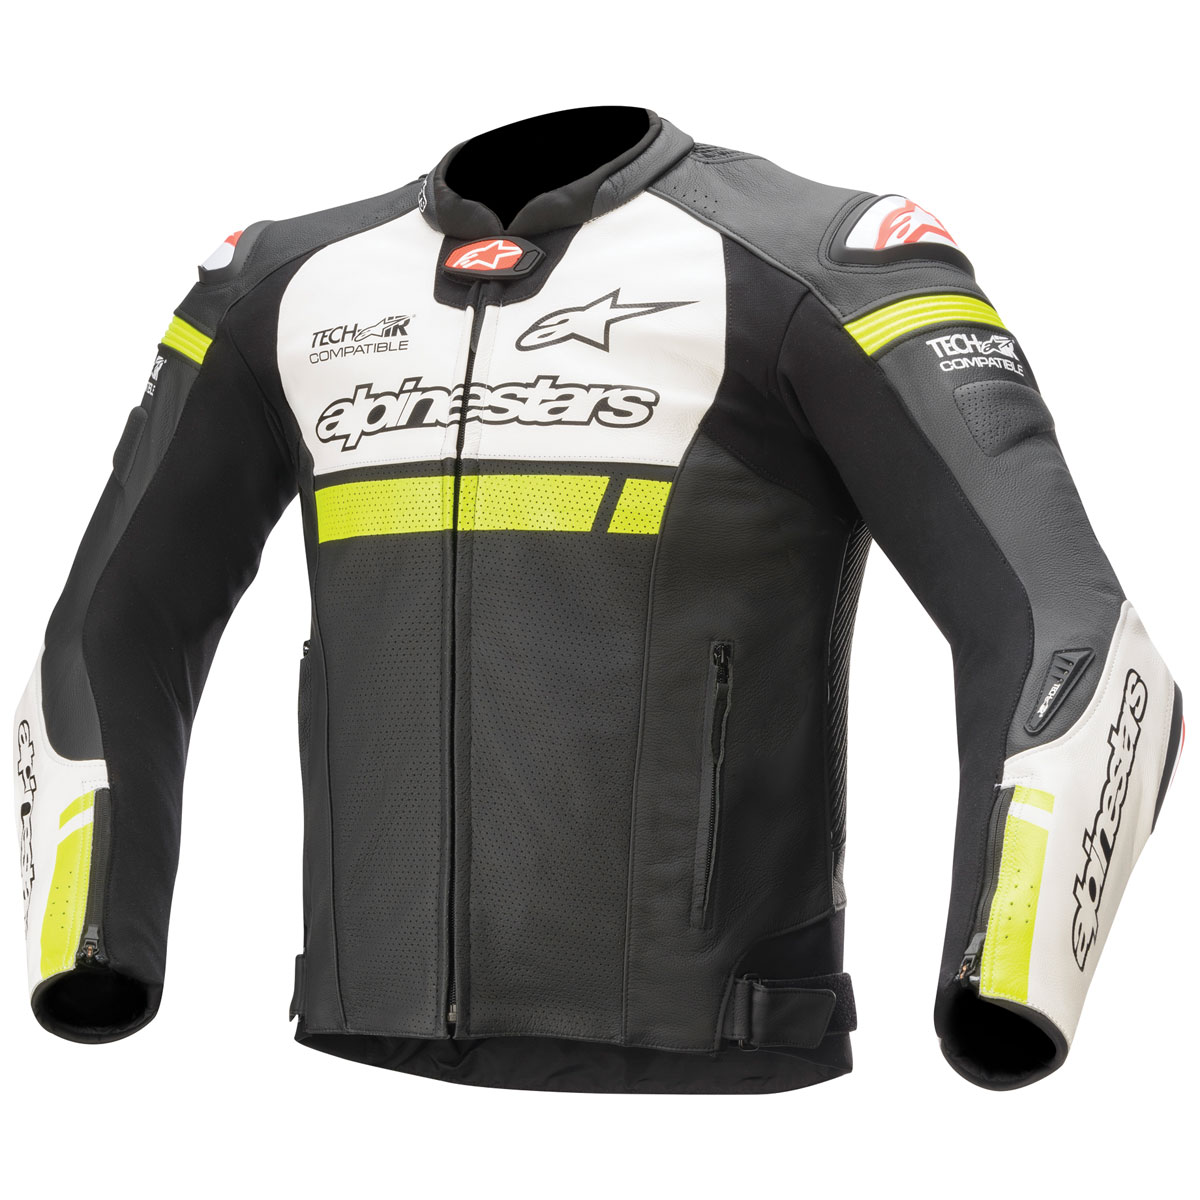 Alpinestars Men's Tech-Air Street Compatible Missile Ignition Black/White/Yellow Leather Jacket